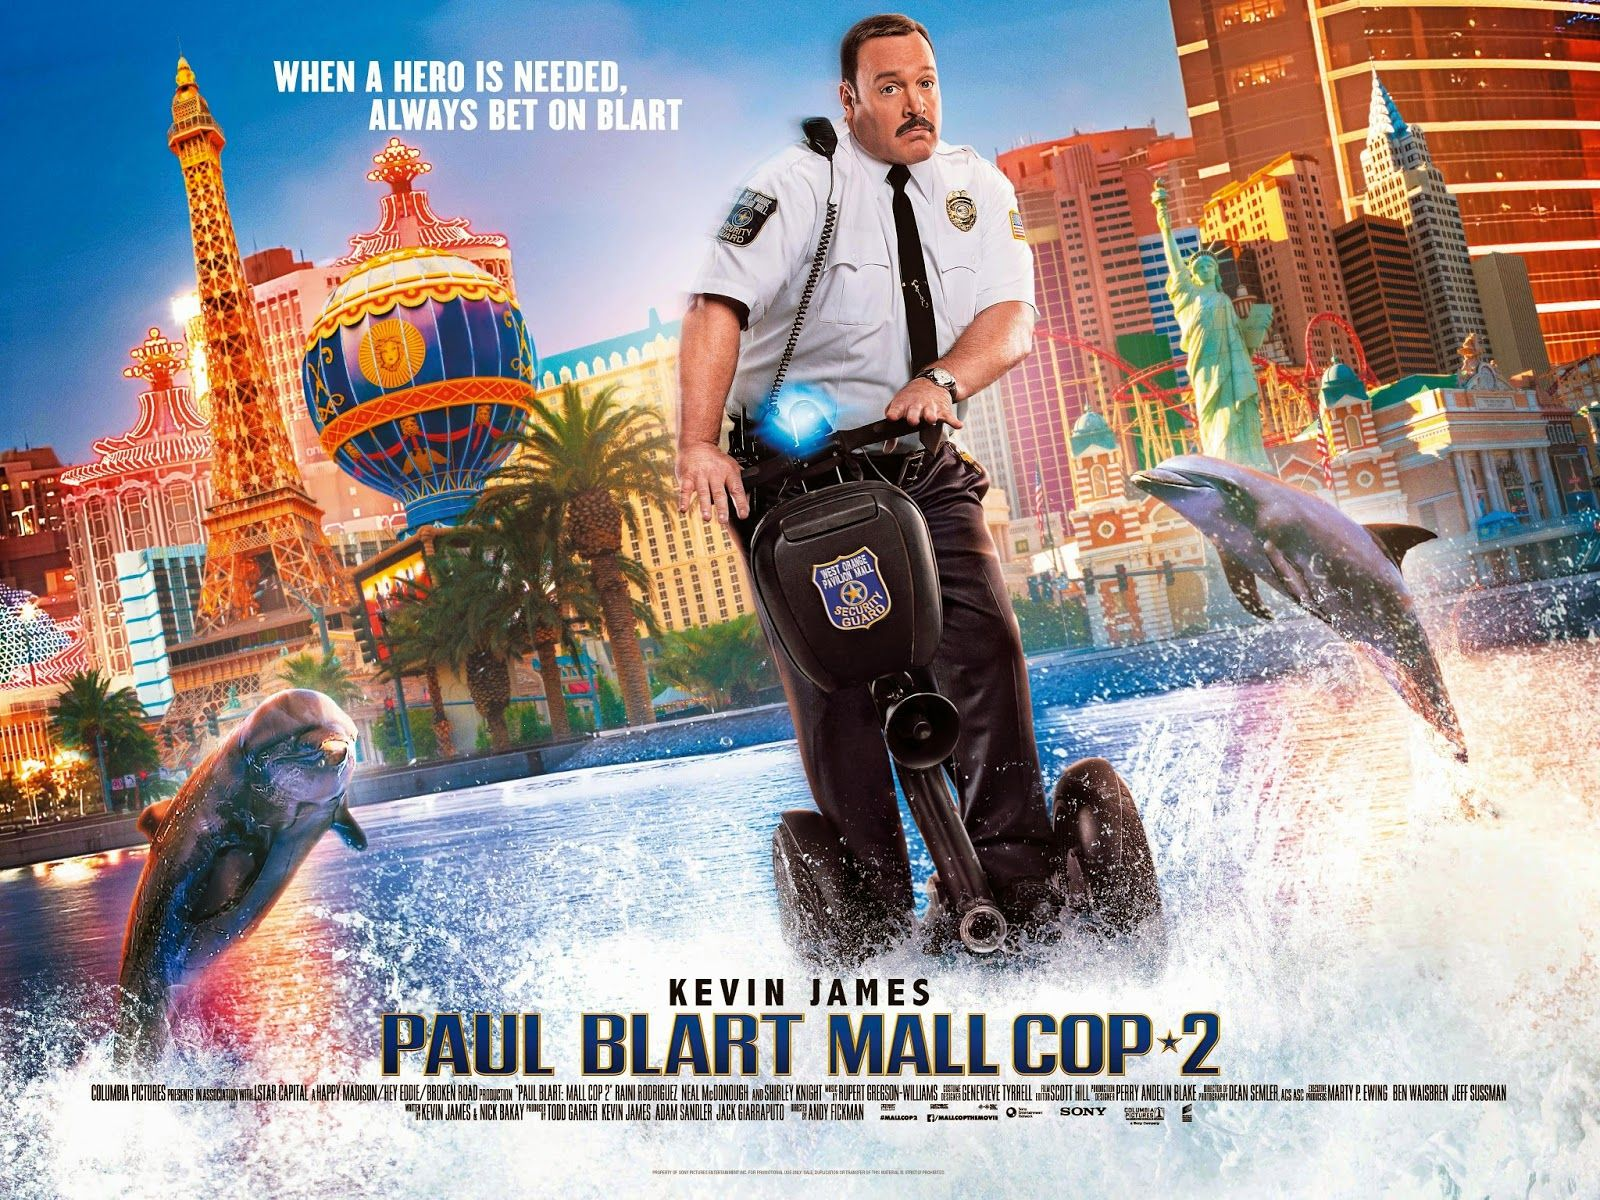 Paul Blart: Mall Cop 2 full movie free DOWNLOAD | Movies free